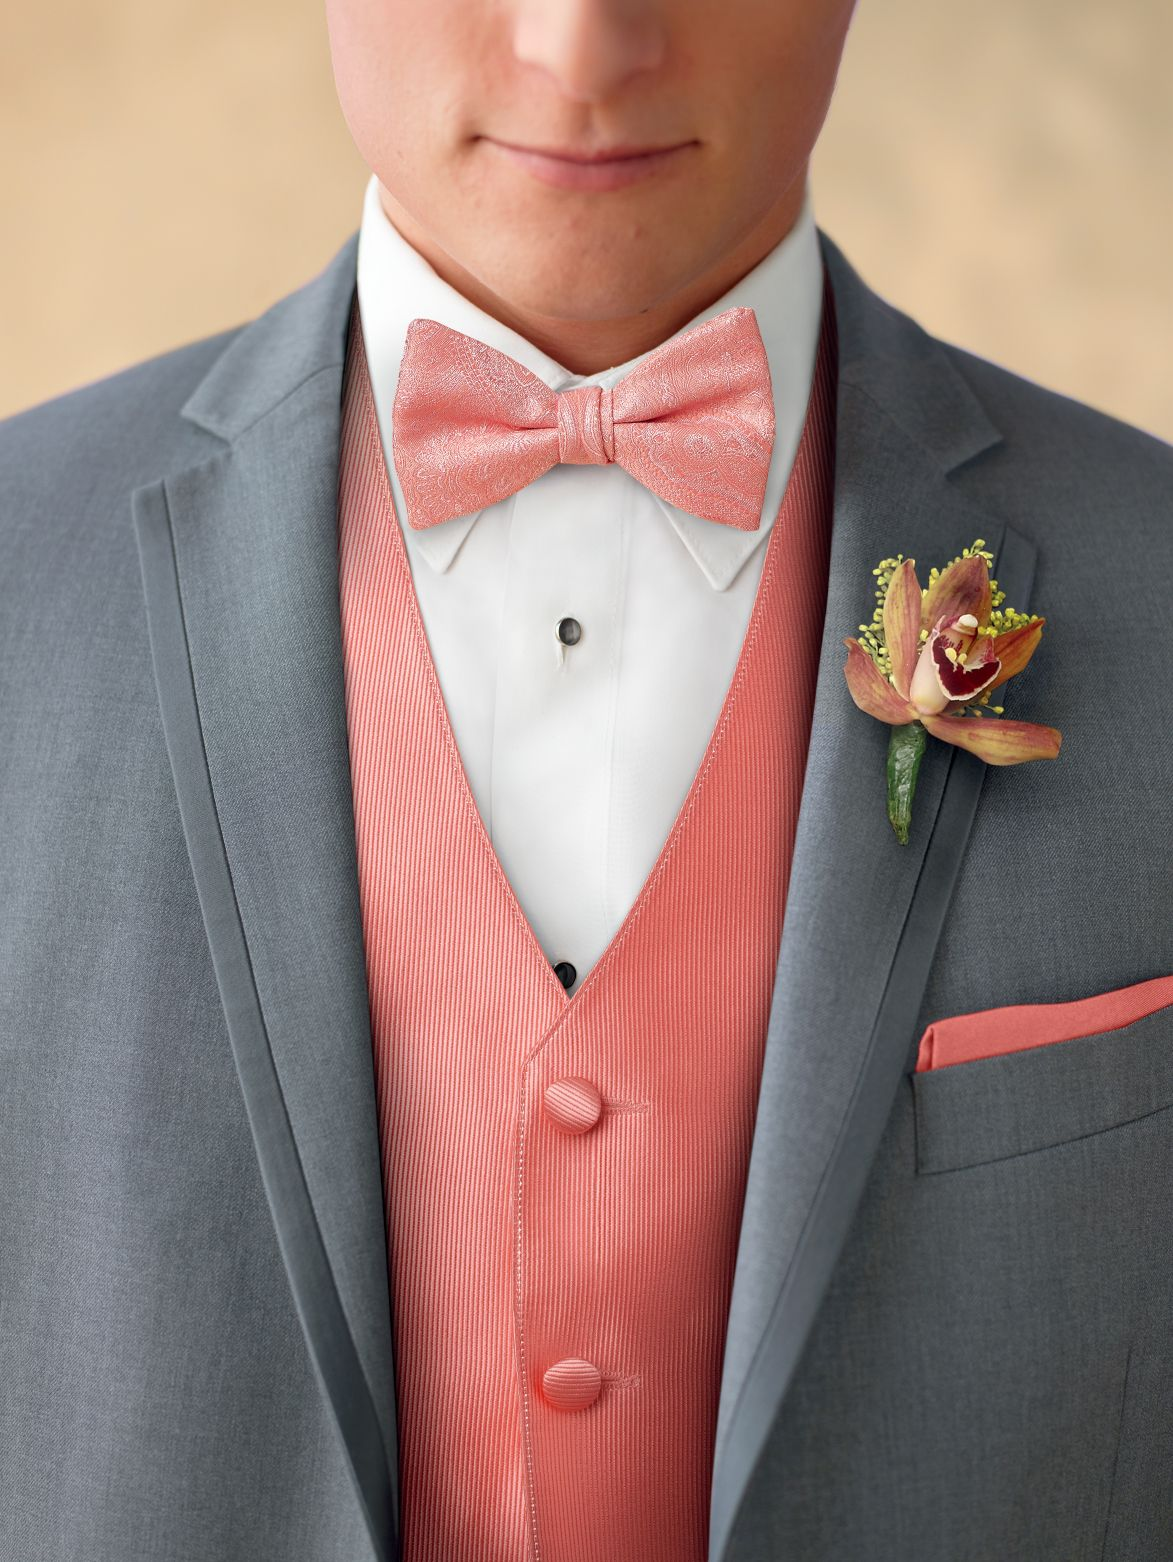 Coral accessories help bring a grey tuxedo to life. | Prom ideas ...